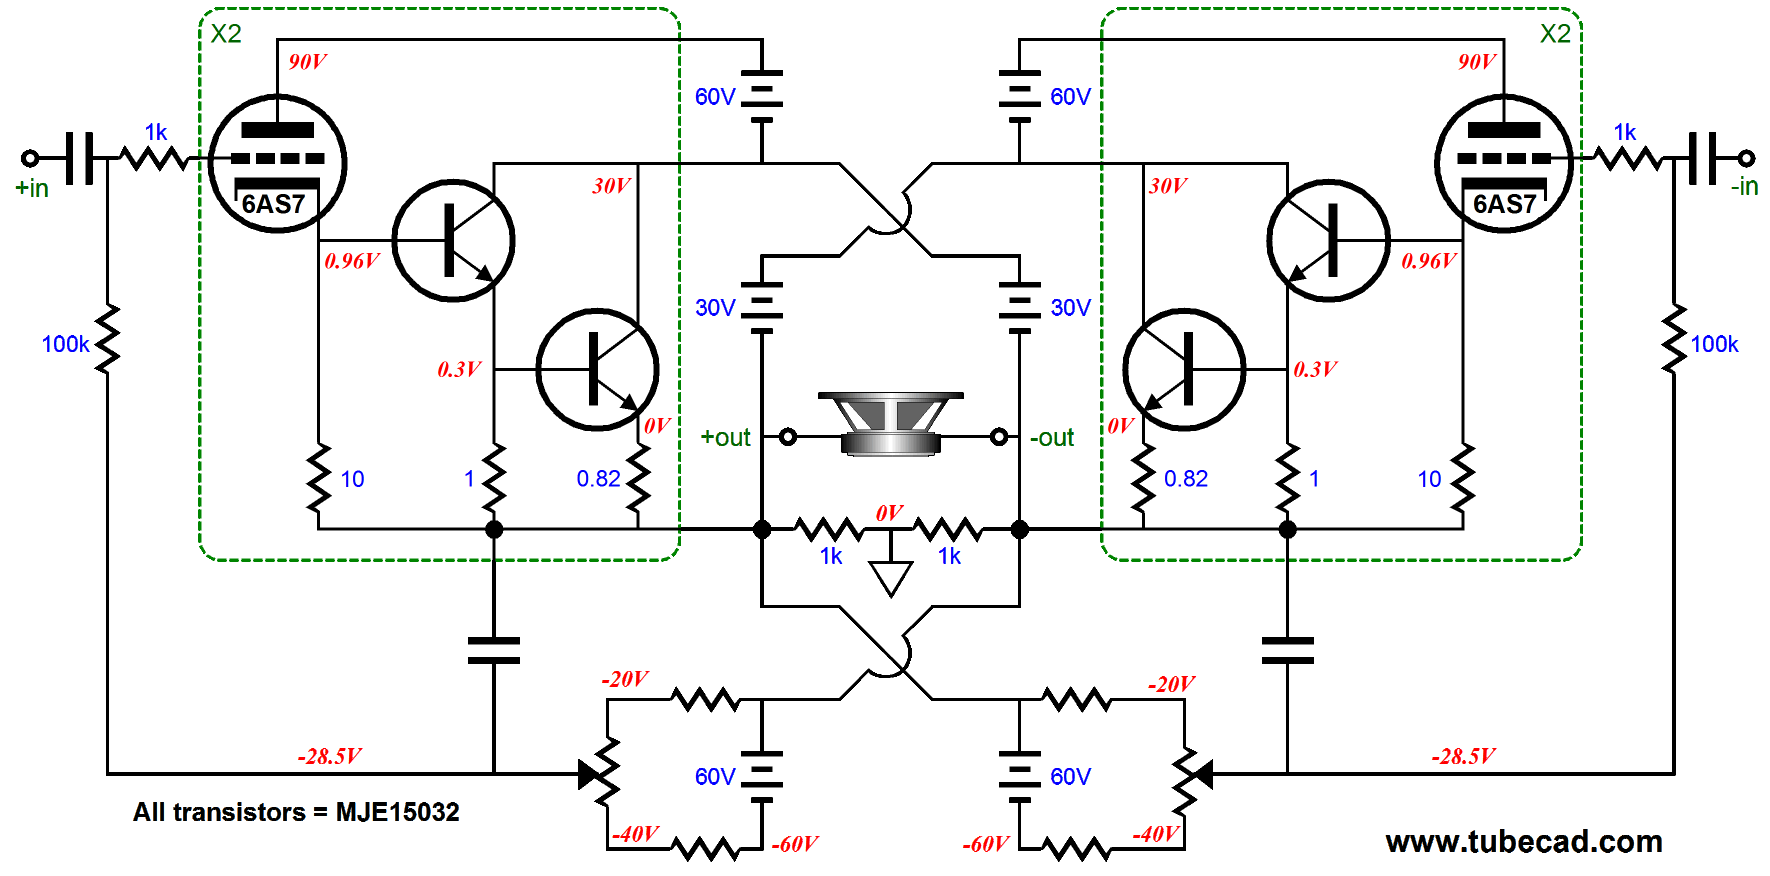 More Distortion Reduction Taming The Triadtron Possibly Related To Quotopamp Application Unity Gain Bufferquot Circuits Note Dc Servo On Right And Auto Bias Circuit Left Nice Today I Would Not Use Mje15032 Transistors Specified But Mjl3281a